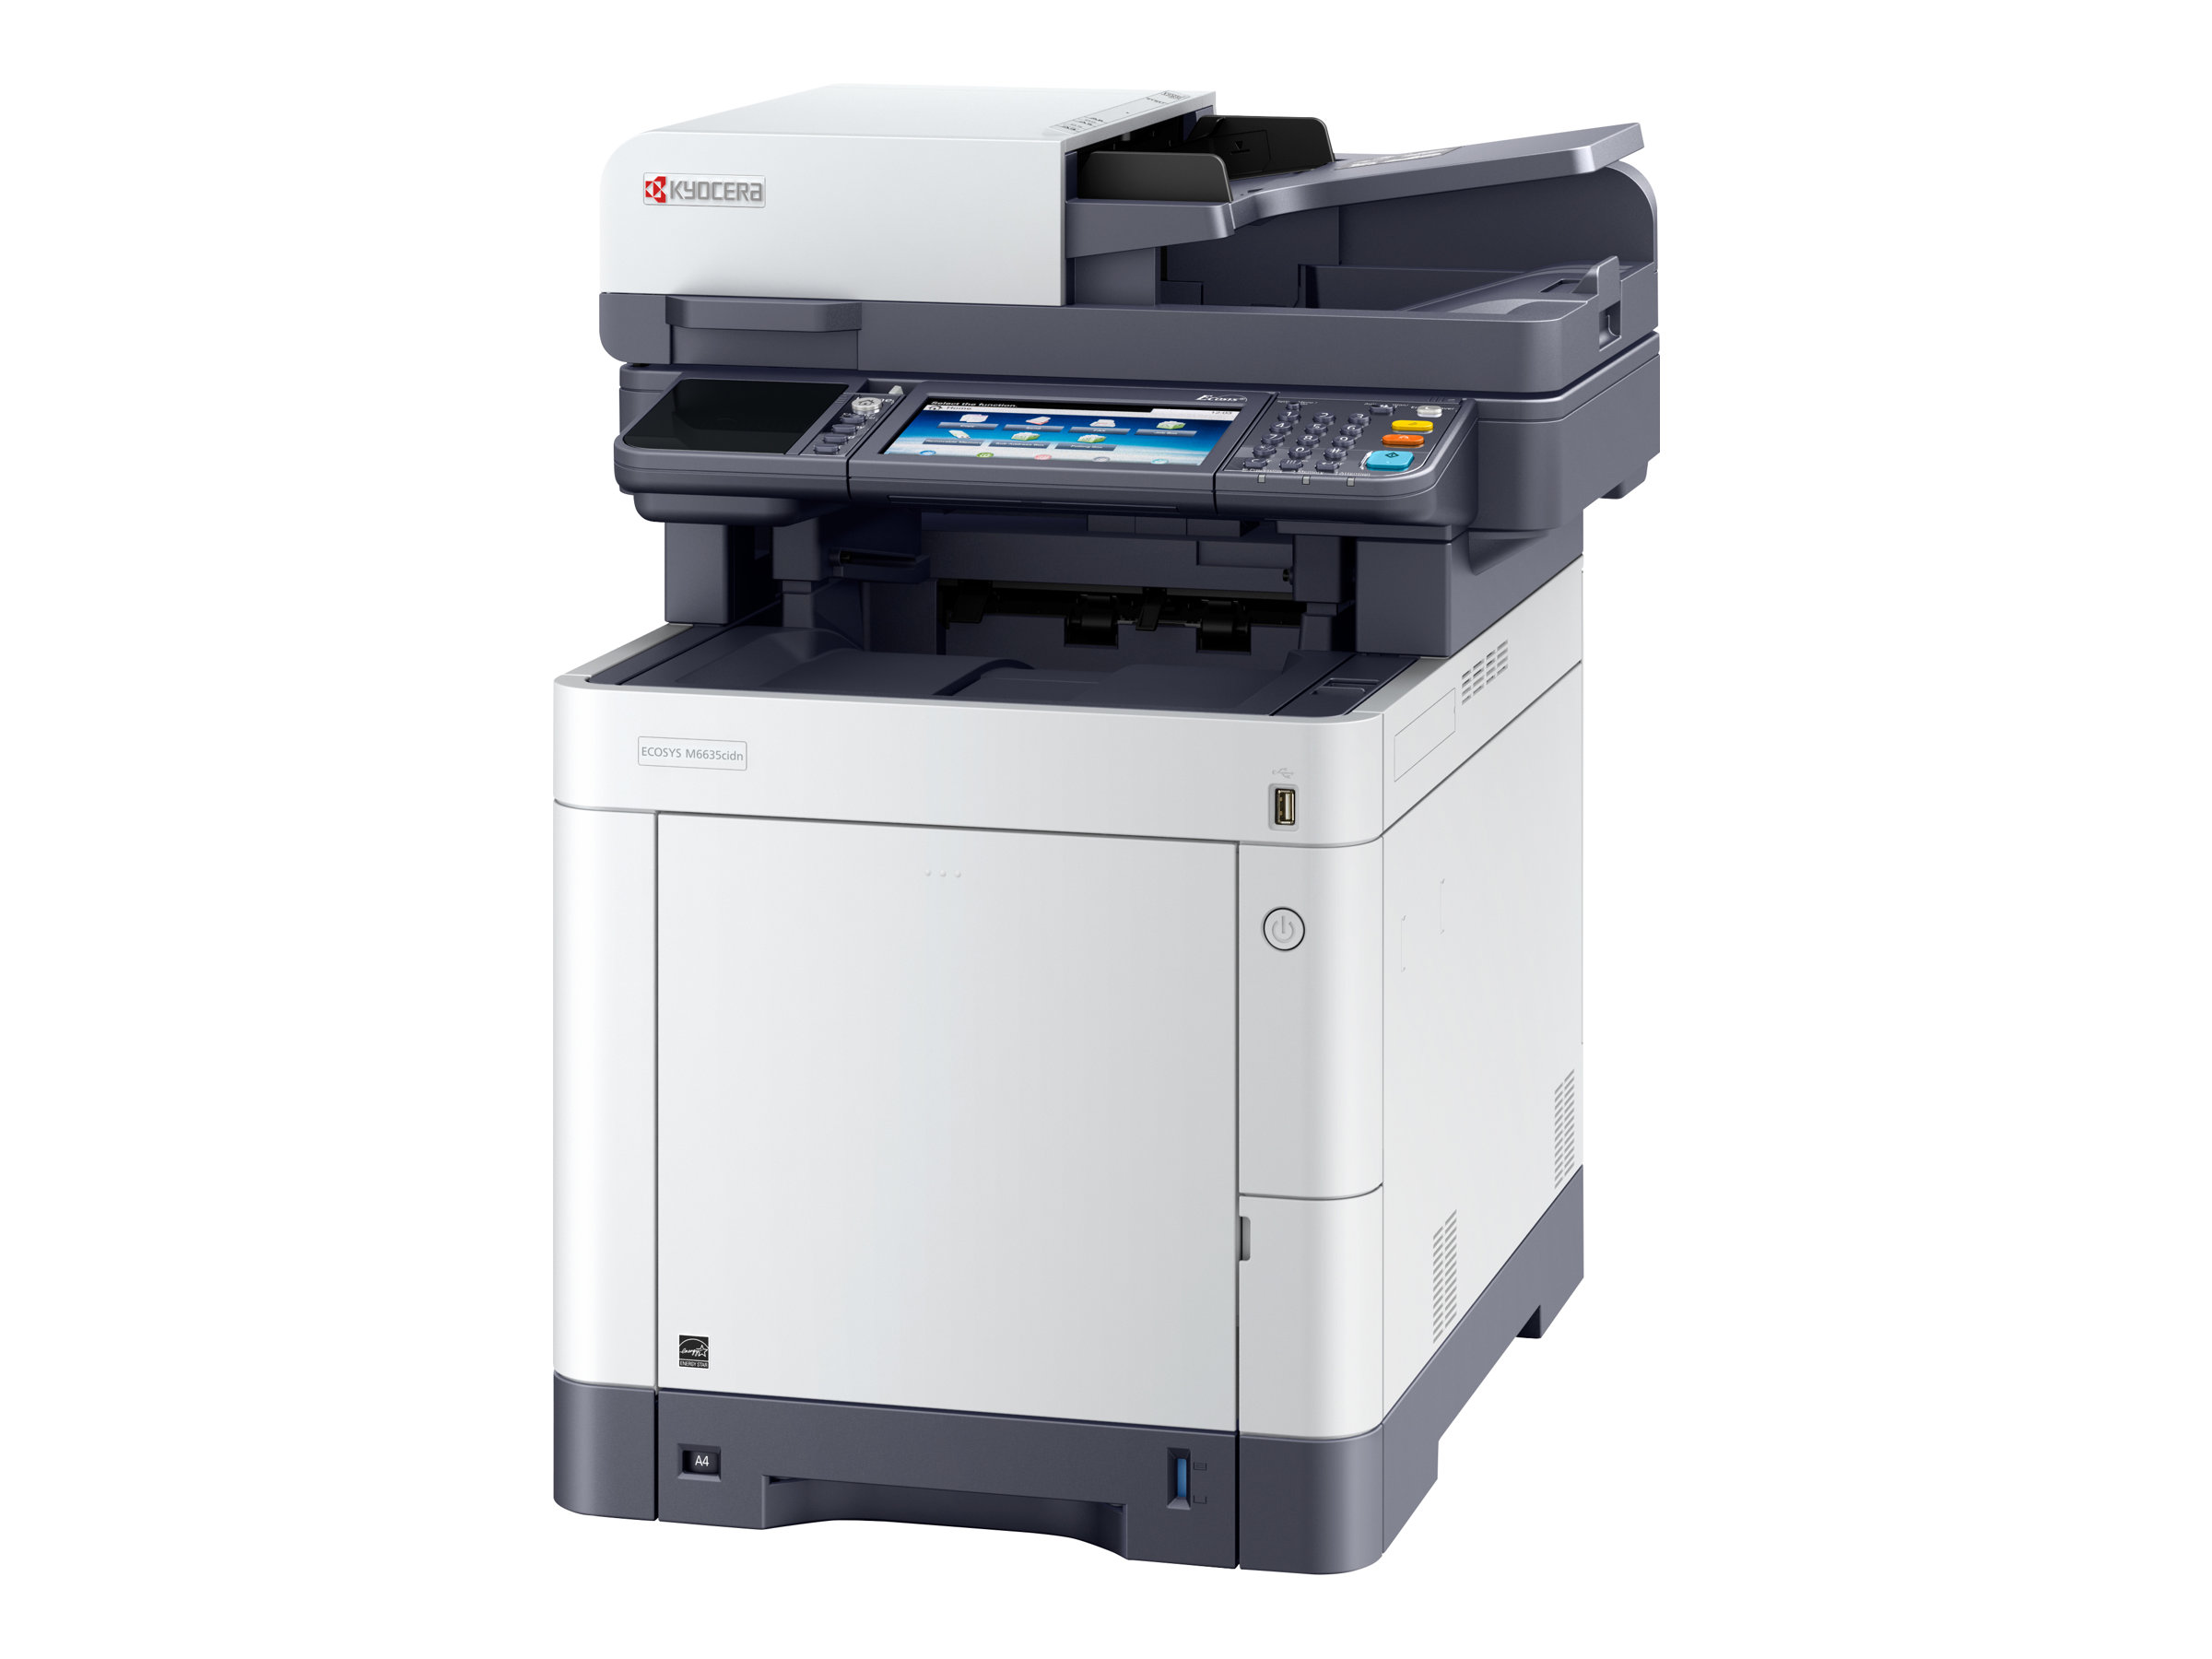 Kyocera ECOSYS M6635cidn - Multifunktionsdrucker - Farbe - Laser - Legal (216 x 356 mm)/